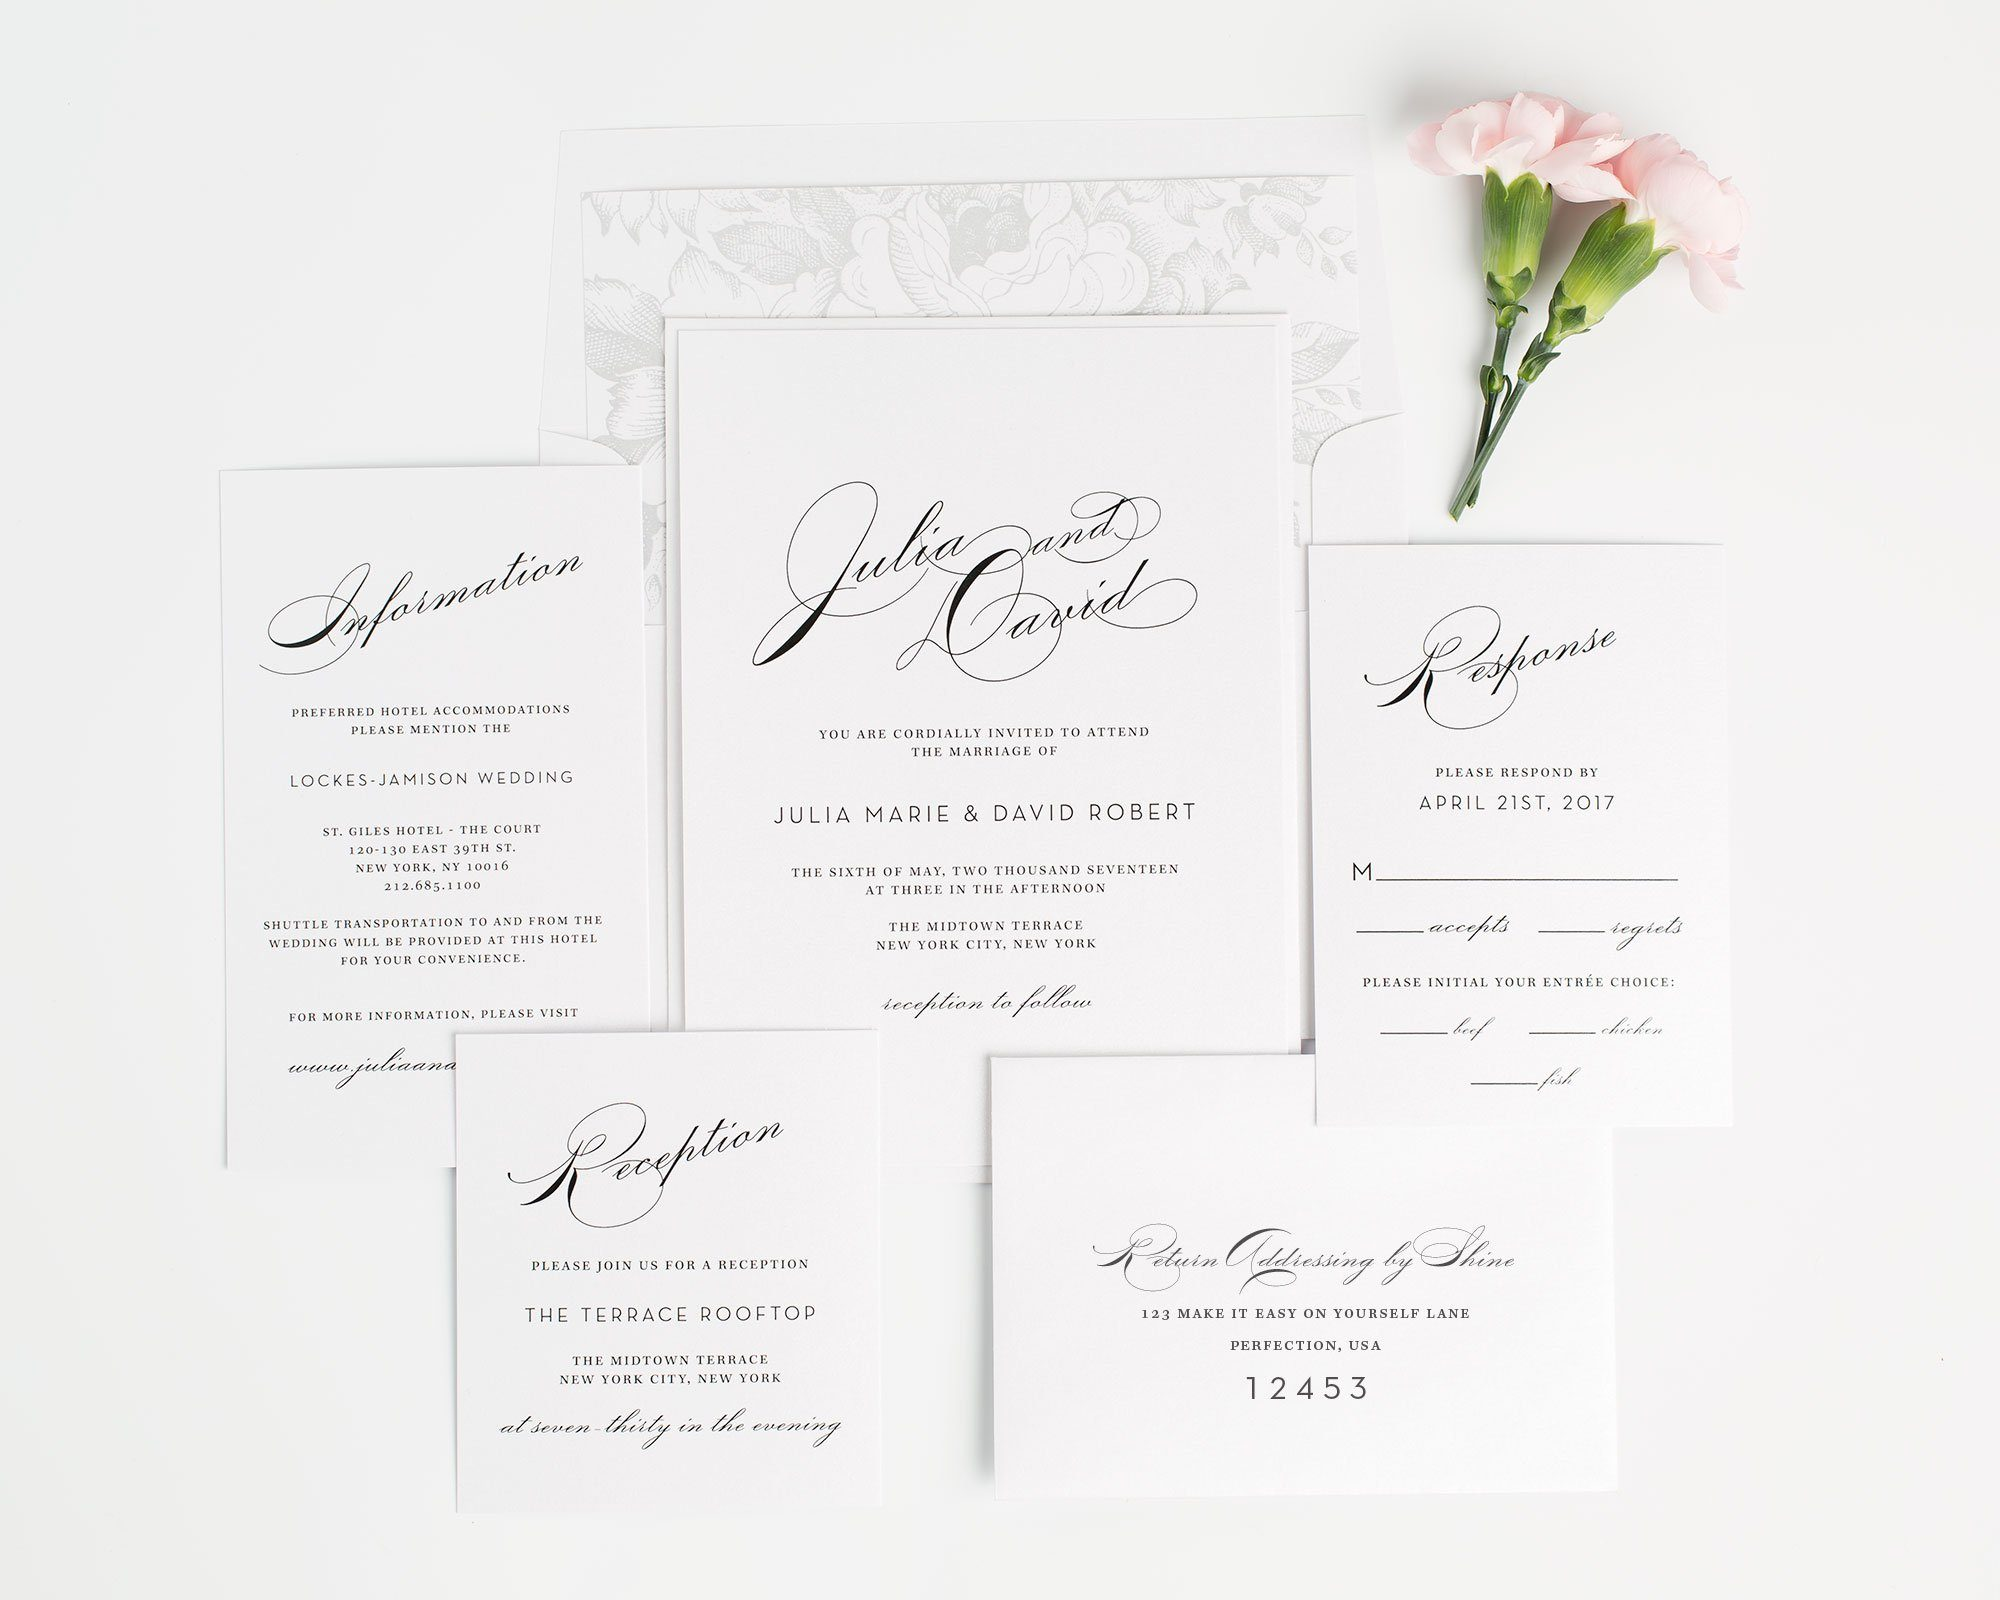 Vintage and Glamorous Wedding Invitations